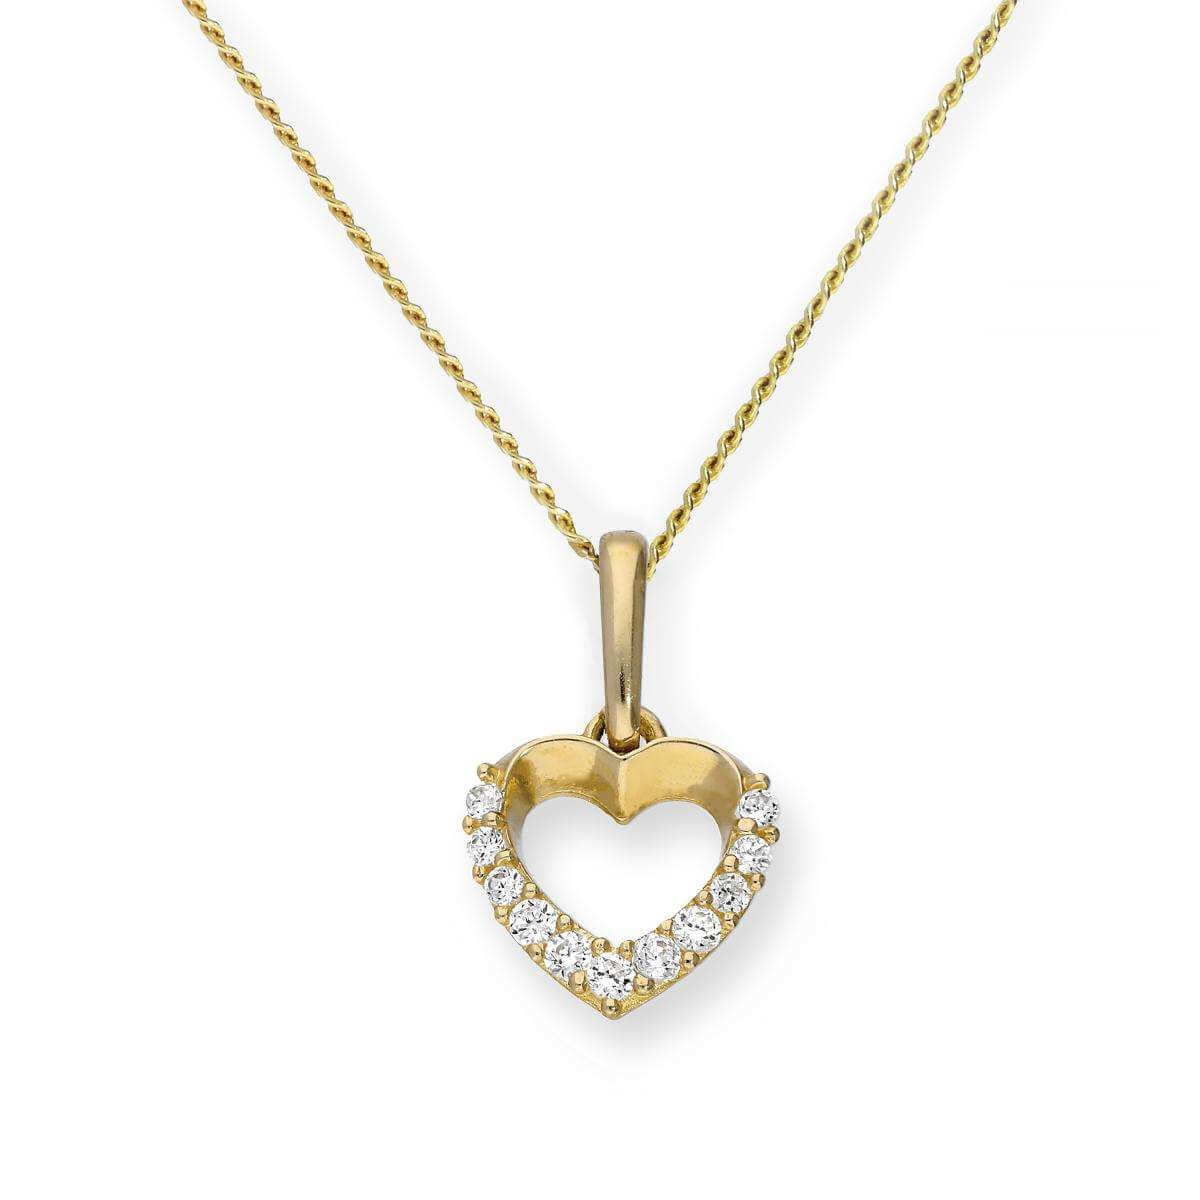 9ct Gold & Clear CZ Crystal Cut Out Heart Pendant Necklace